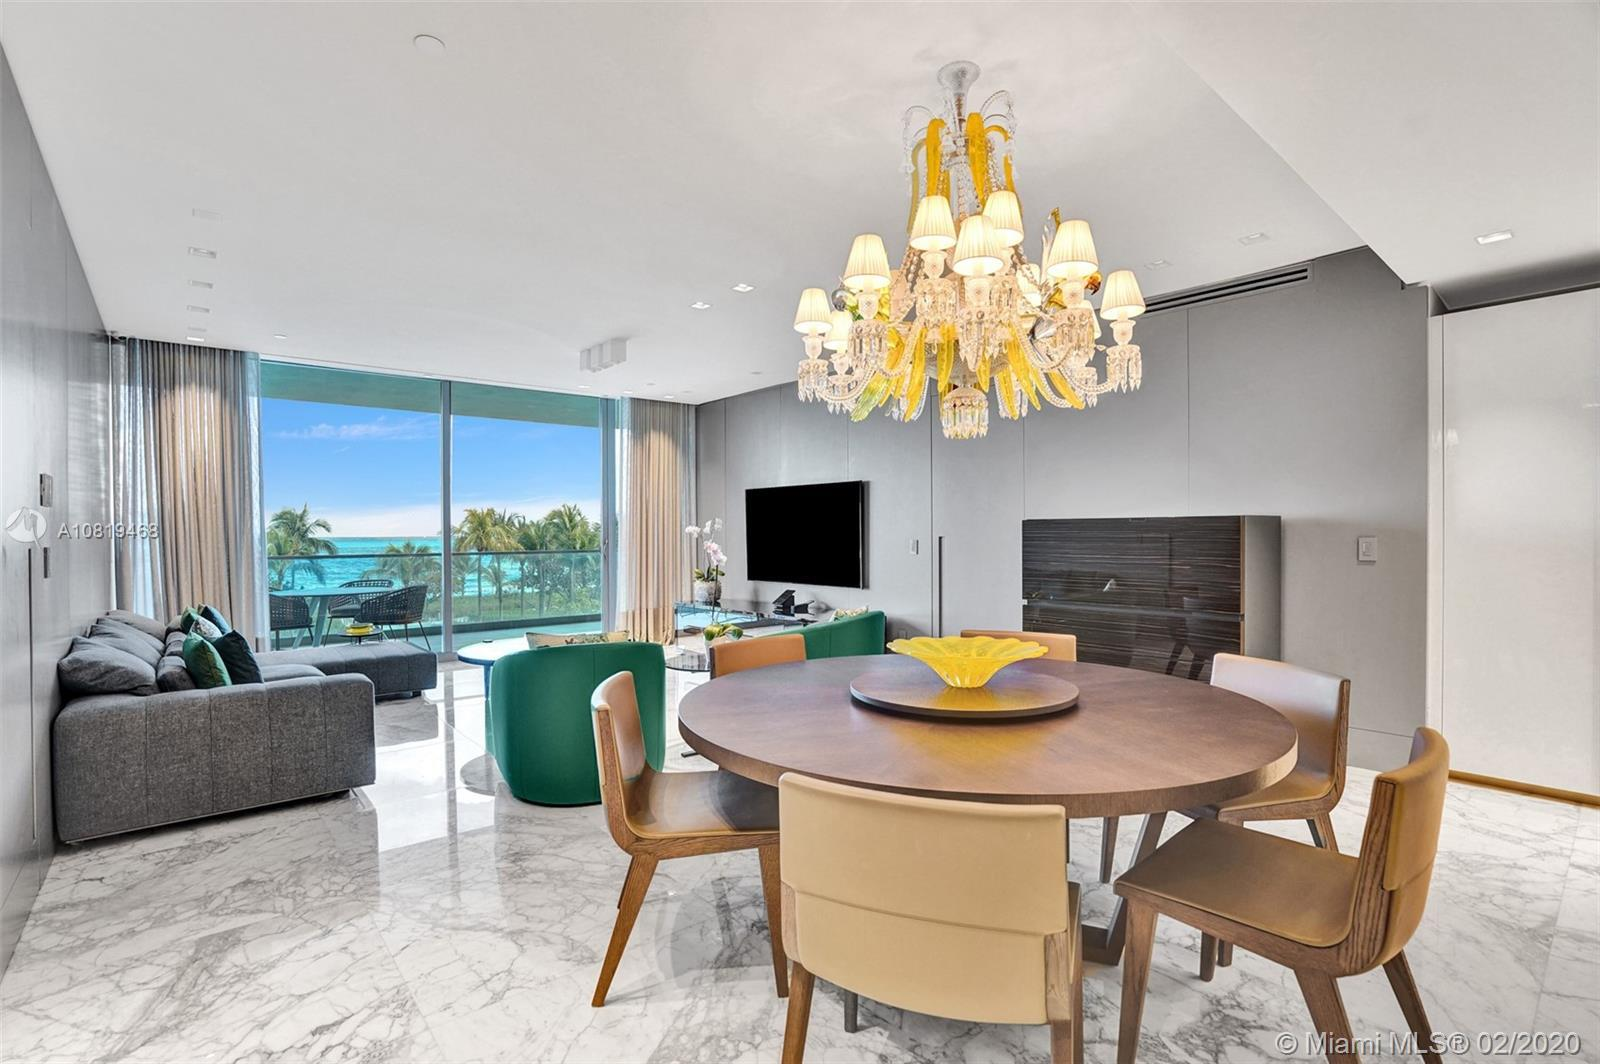 Enjoy Atlantic Ocean vistas and tropical breezes from this Oceana Bal Harbour 2 bedroom plus den sma